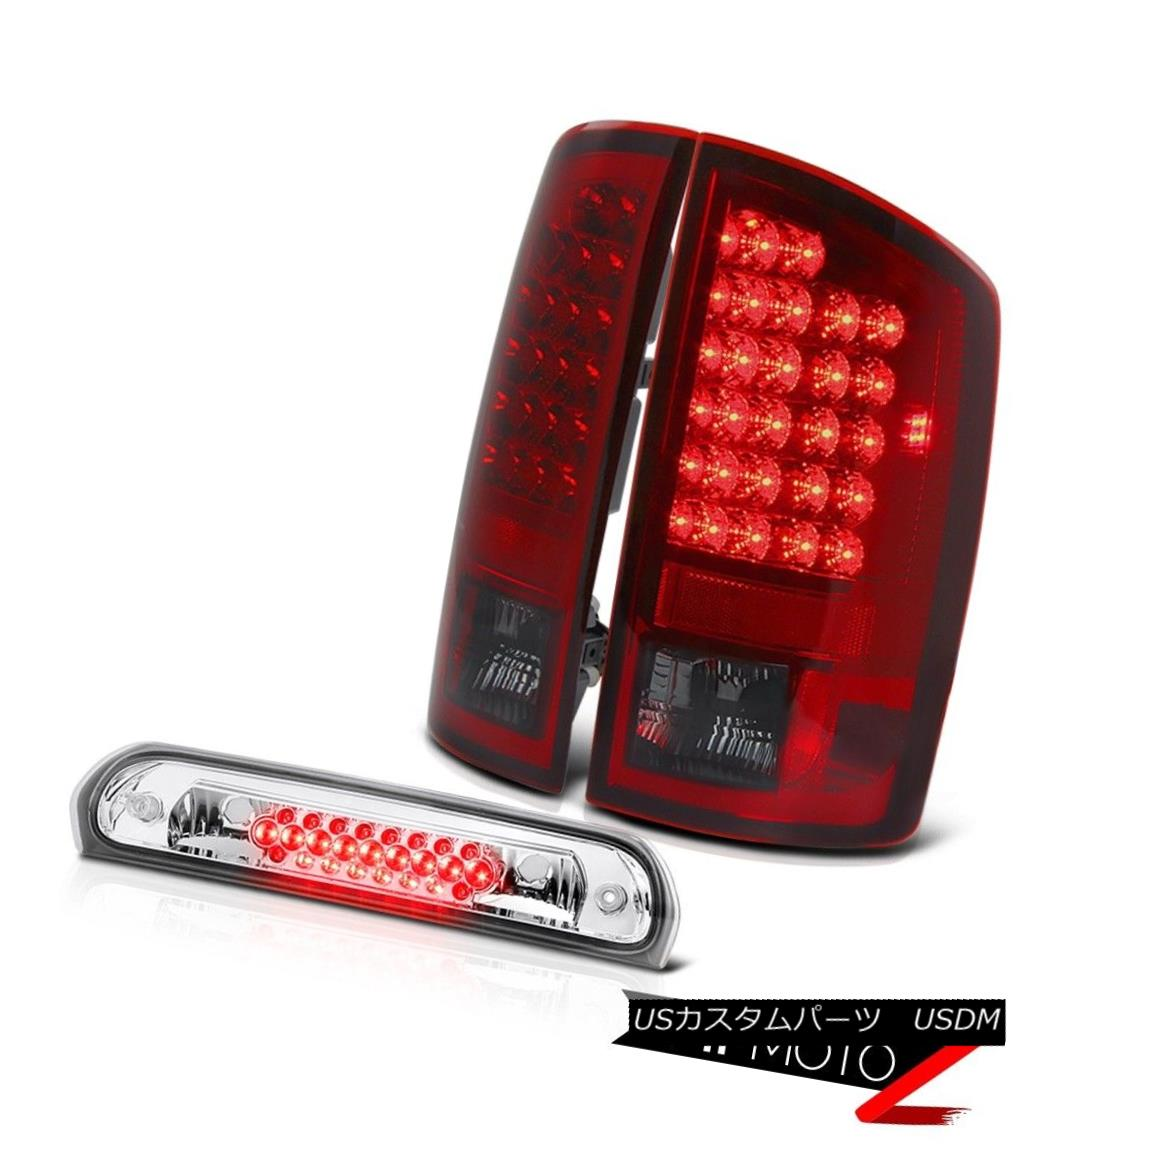 テールライト Wine Red LED Philip SuperFlax Tail Lights Third Brake Cargo 2006 Dodge Ram Hemi ワインレッドLED Philip SuperFlaxテールライトThird Brake Cargo 2006 Dodge Ram Hemi